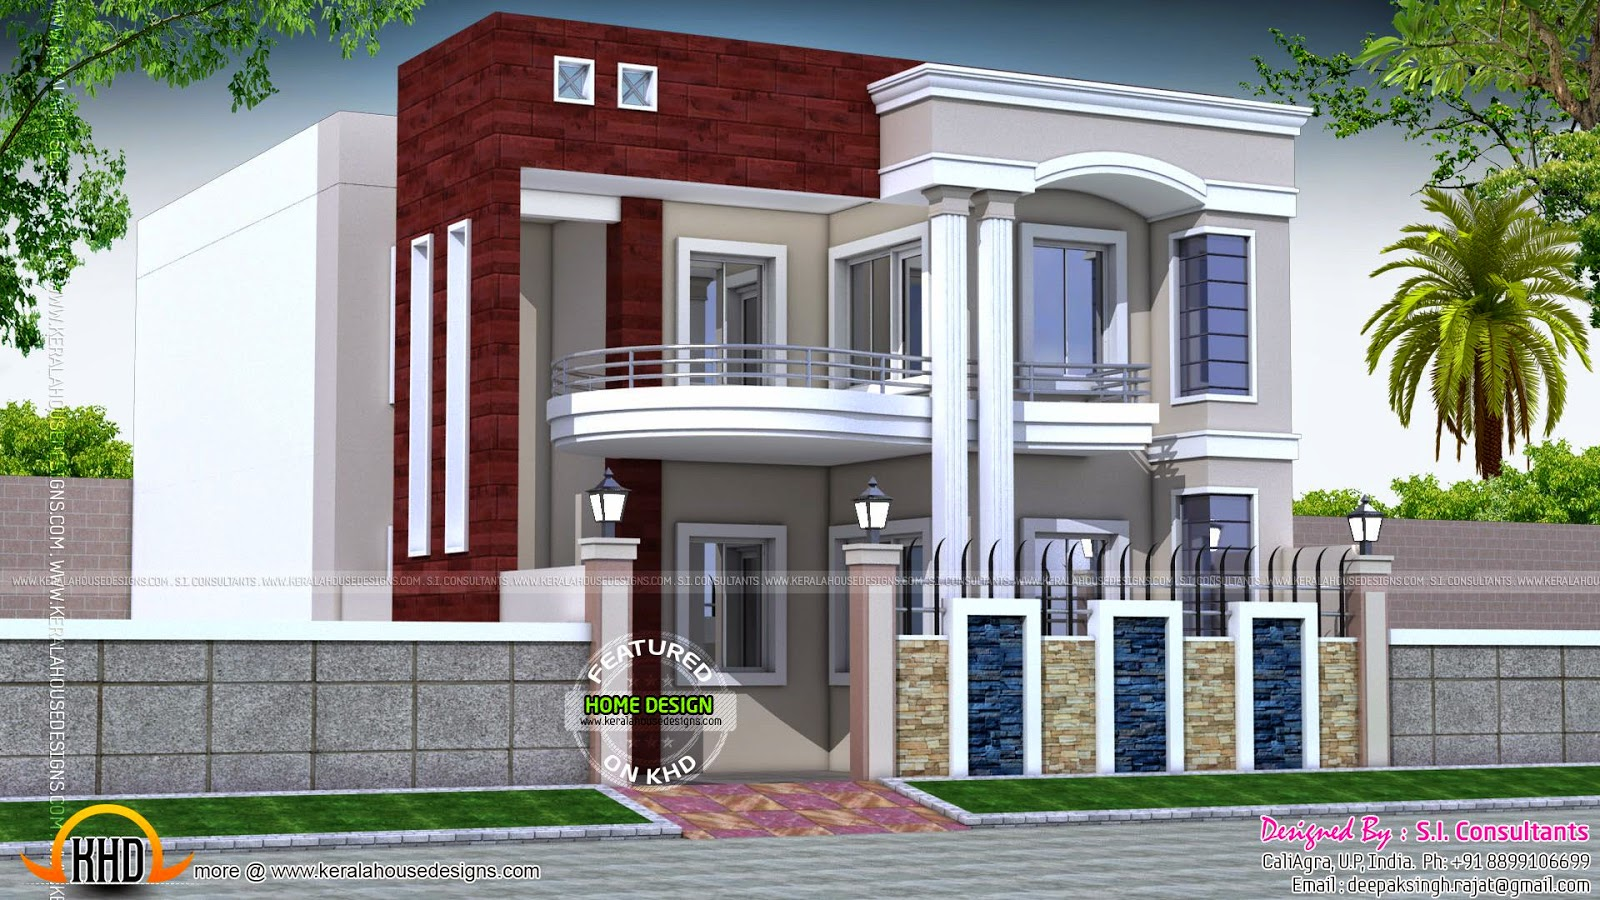 House design in north india kerala home design and floor Latest simple house design